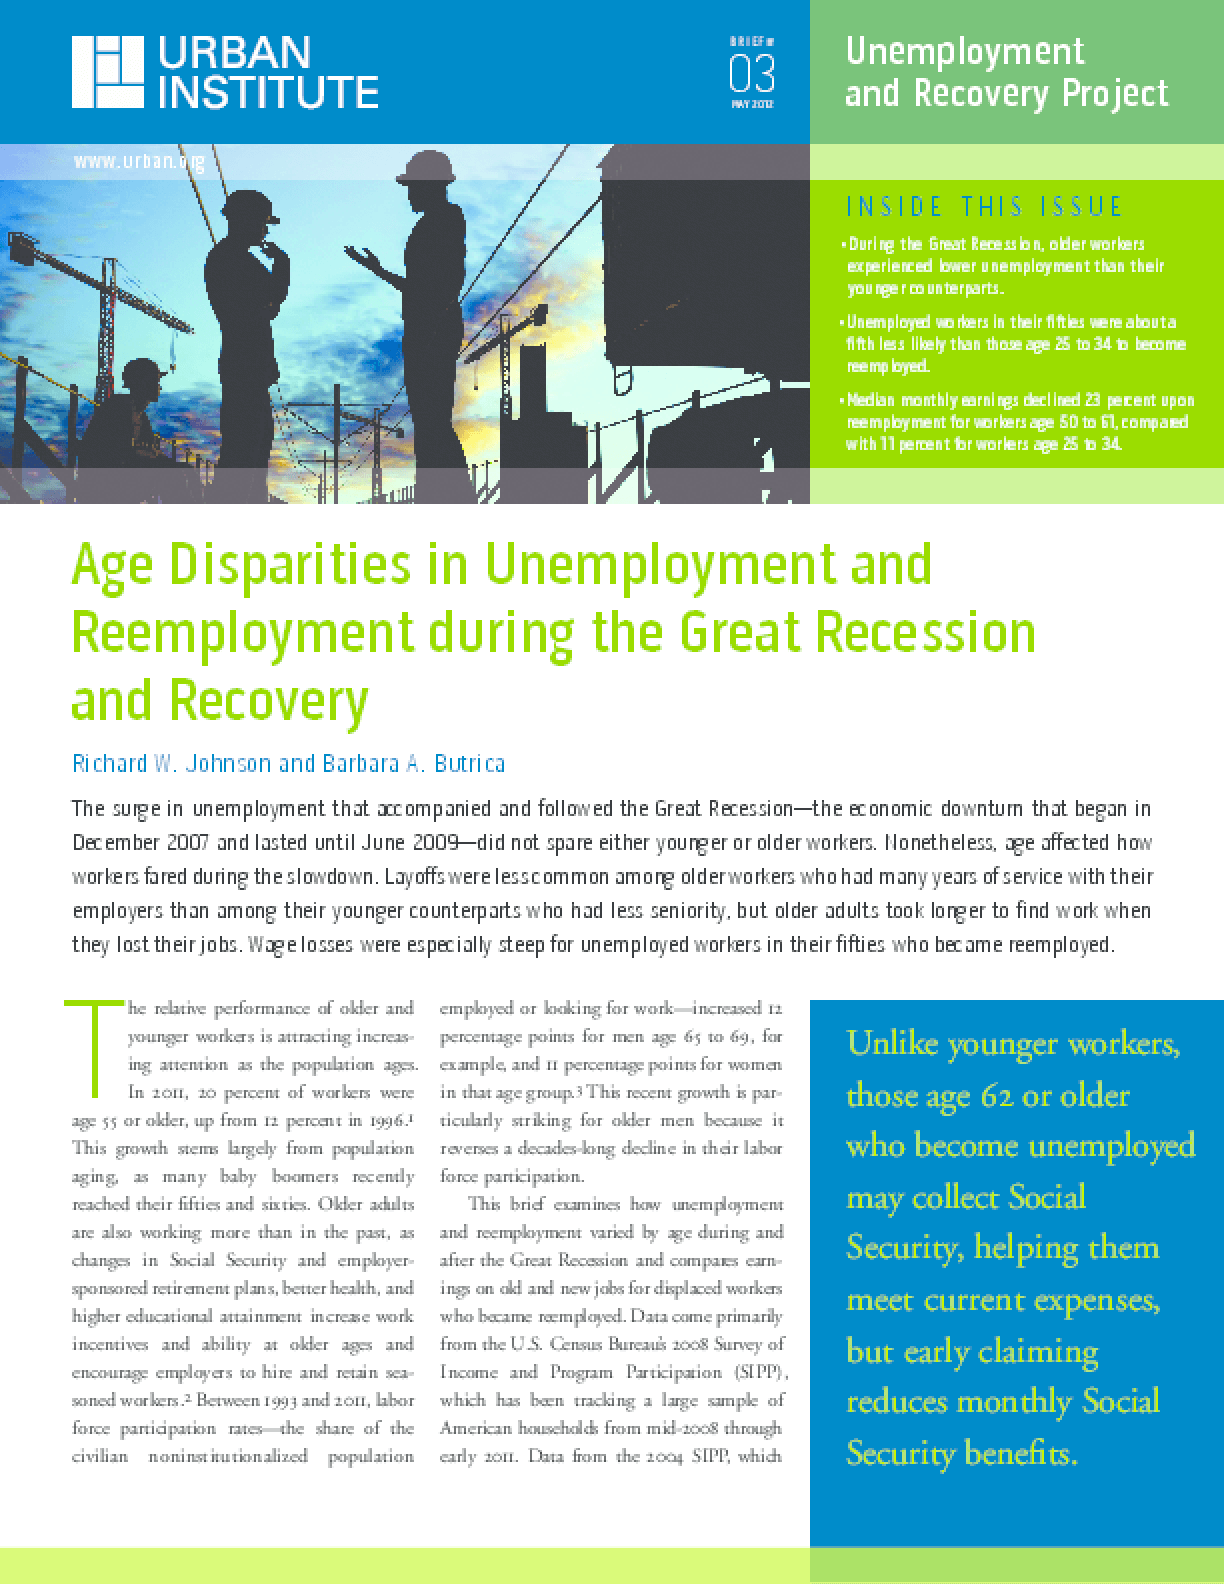 Age Disparities in Unemployment and Reemployment During the Great Recession and Recovery